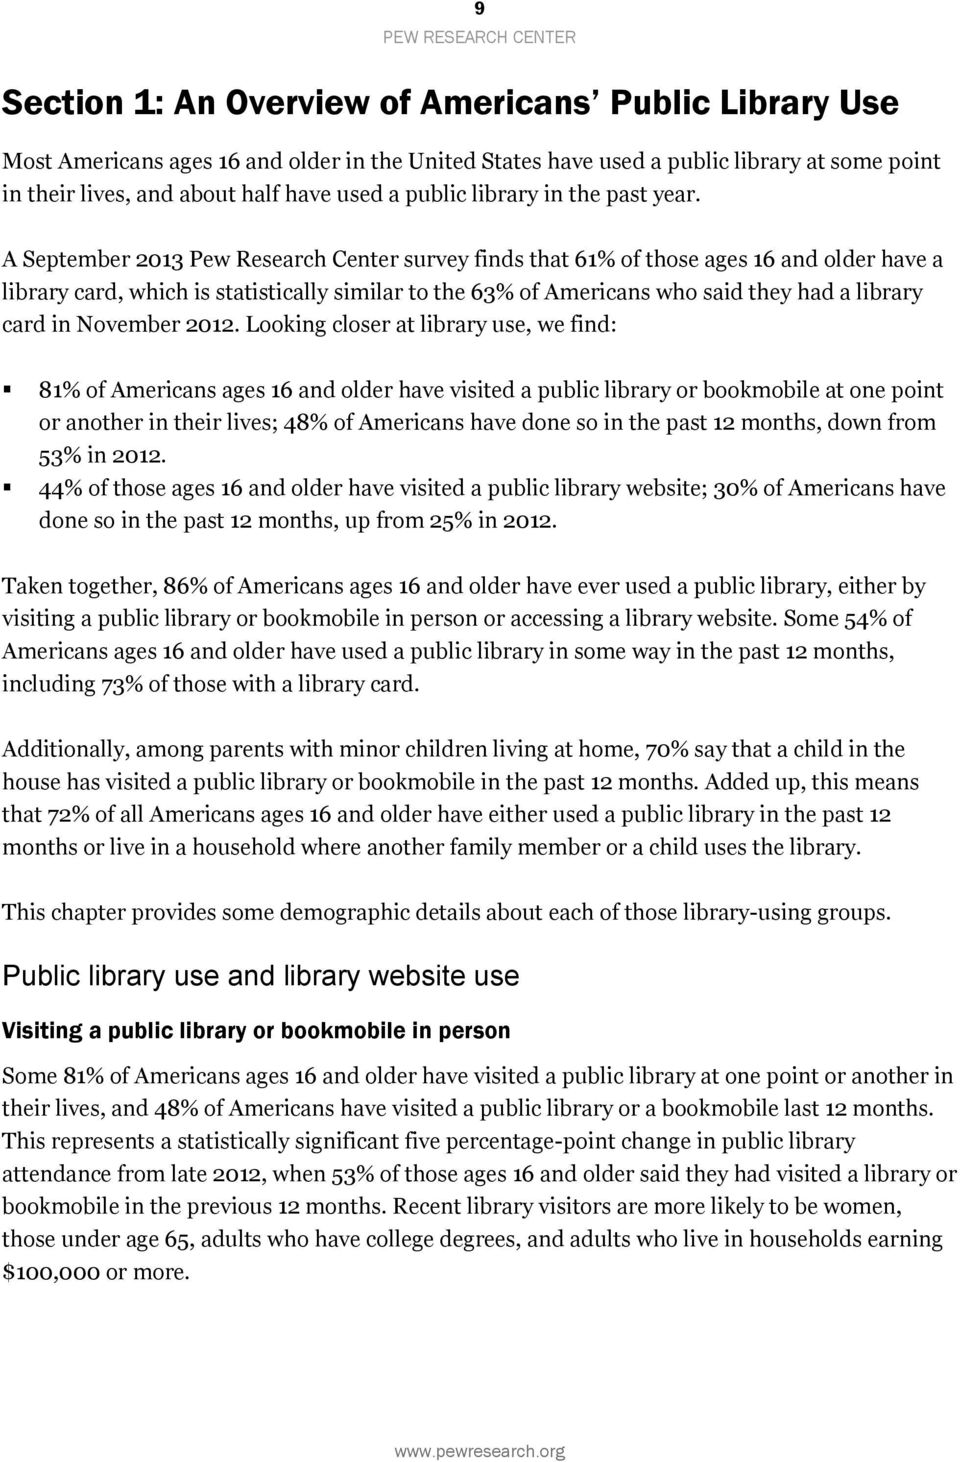 A September 2013 Pew Research Center survey finds that 61% of those ages 16 and older have a library card, which is statistically similar to the 63% of Americans who said they had a library card in